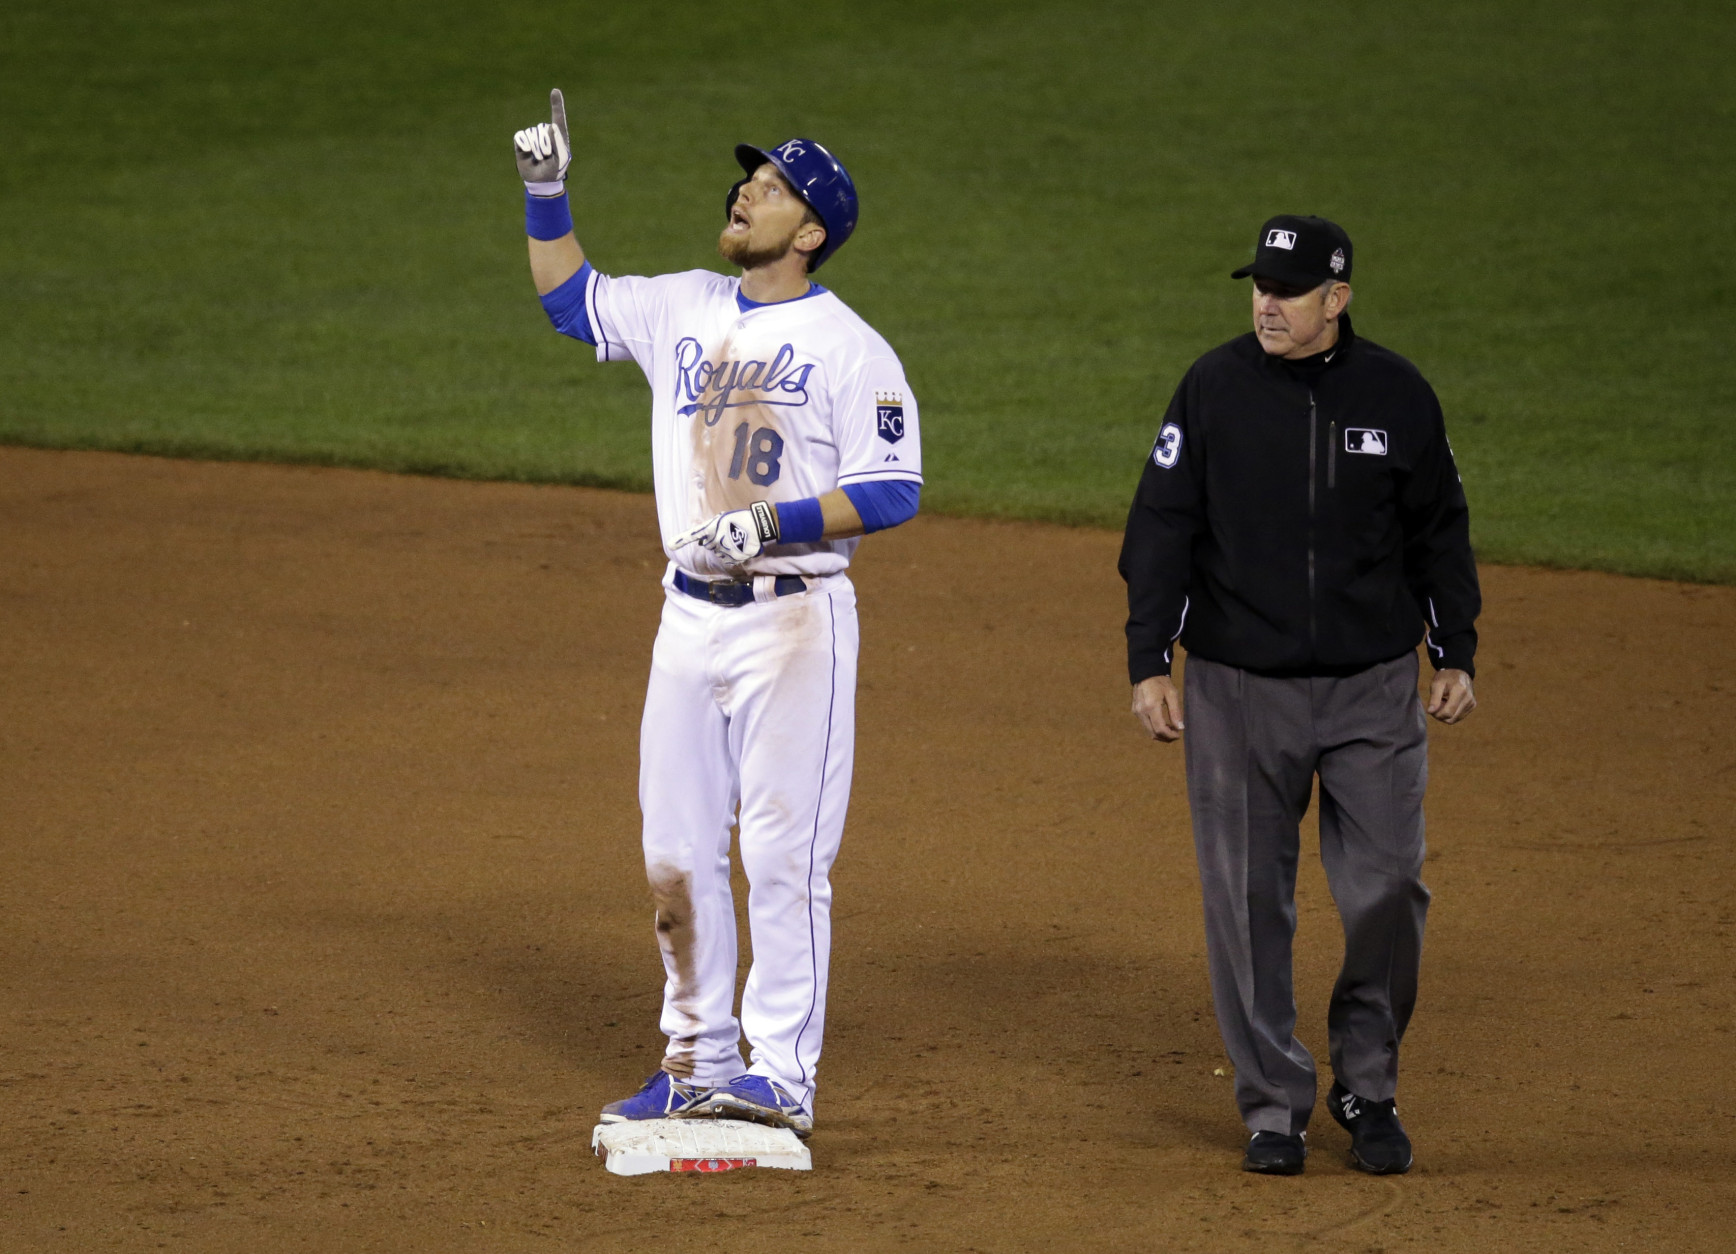 Kansas City Royals' Ben Zobrist reacts after hitting a double during the eighth inning of Game 1 of the Major League Baseball World Series against the New York Mets Tuesday, Oct. 27, 2015, in Kansas City, Mo. (AP Photo/David Goldman)